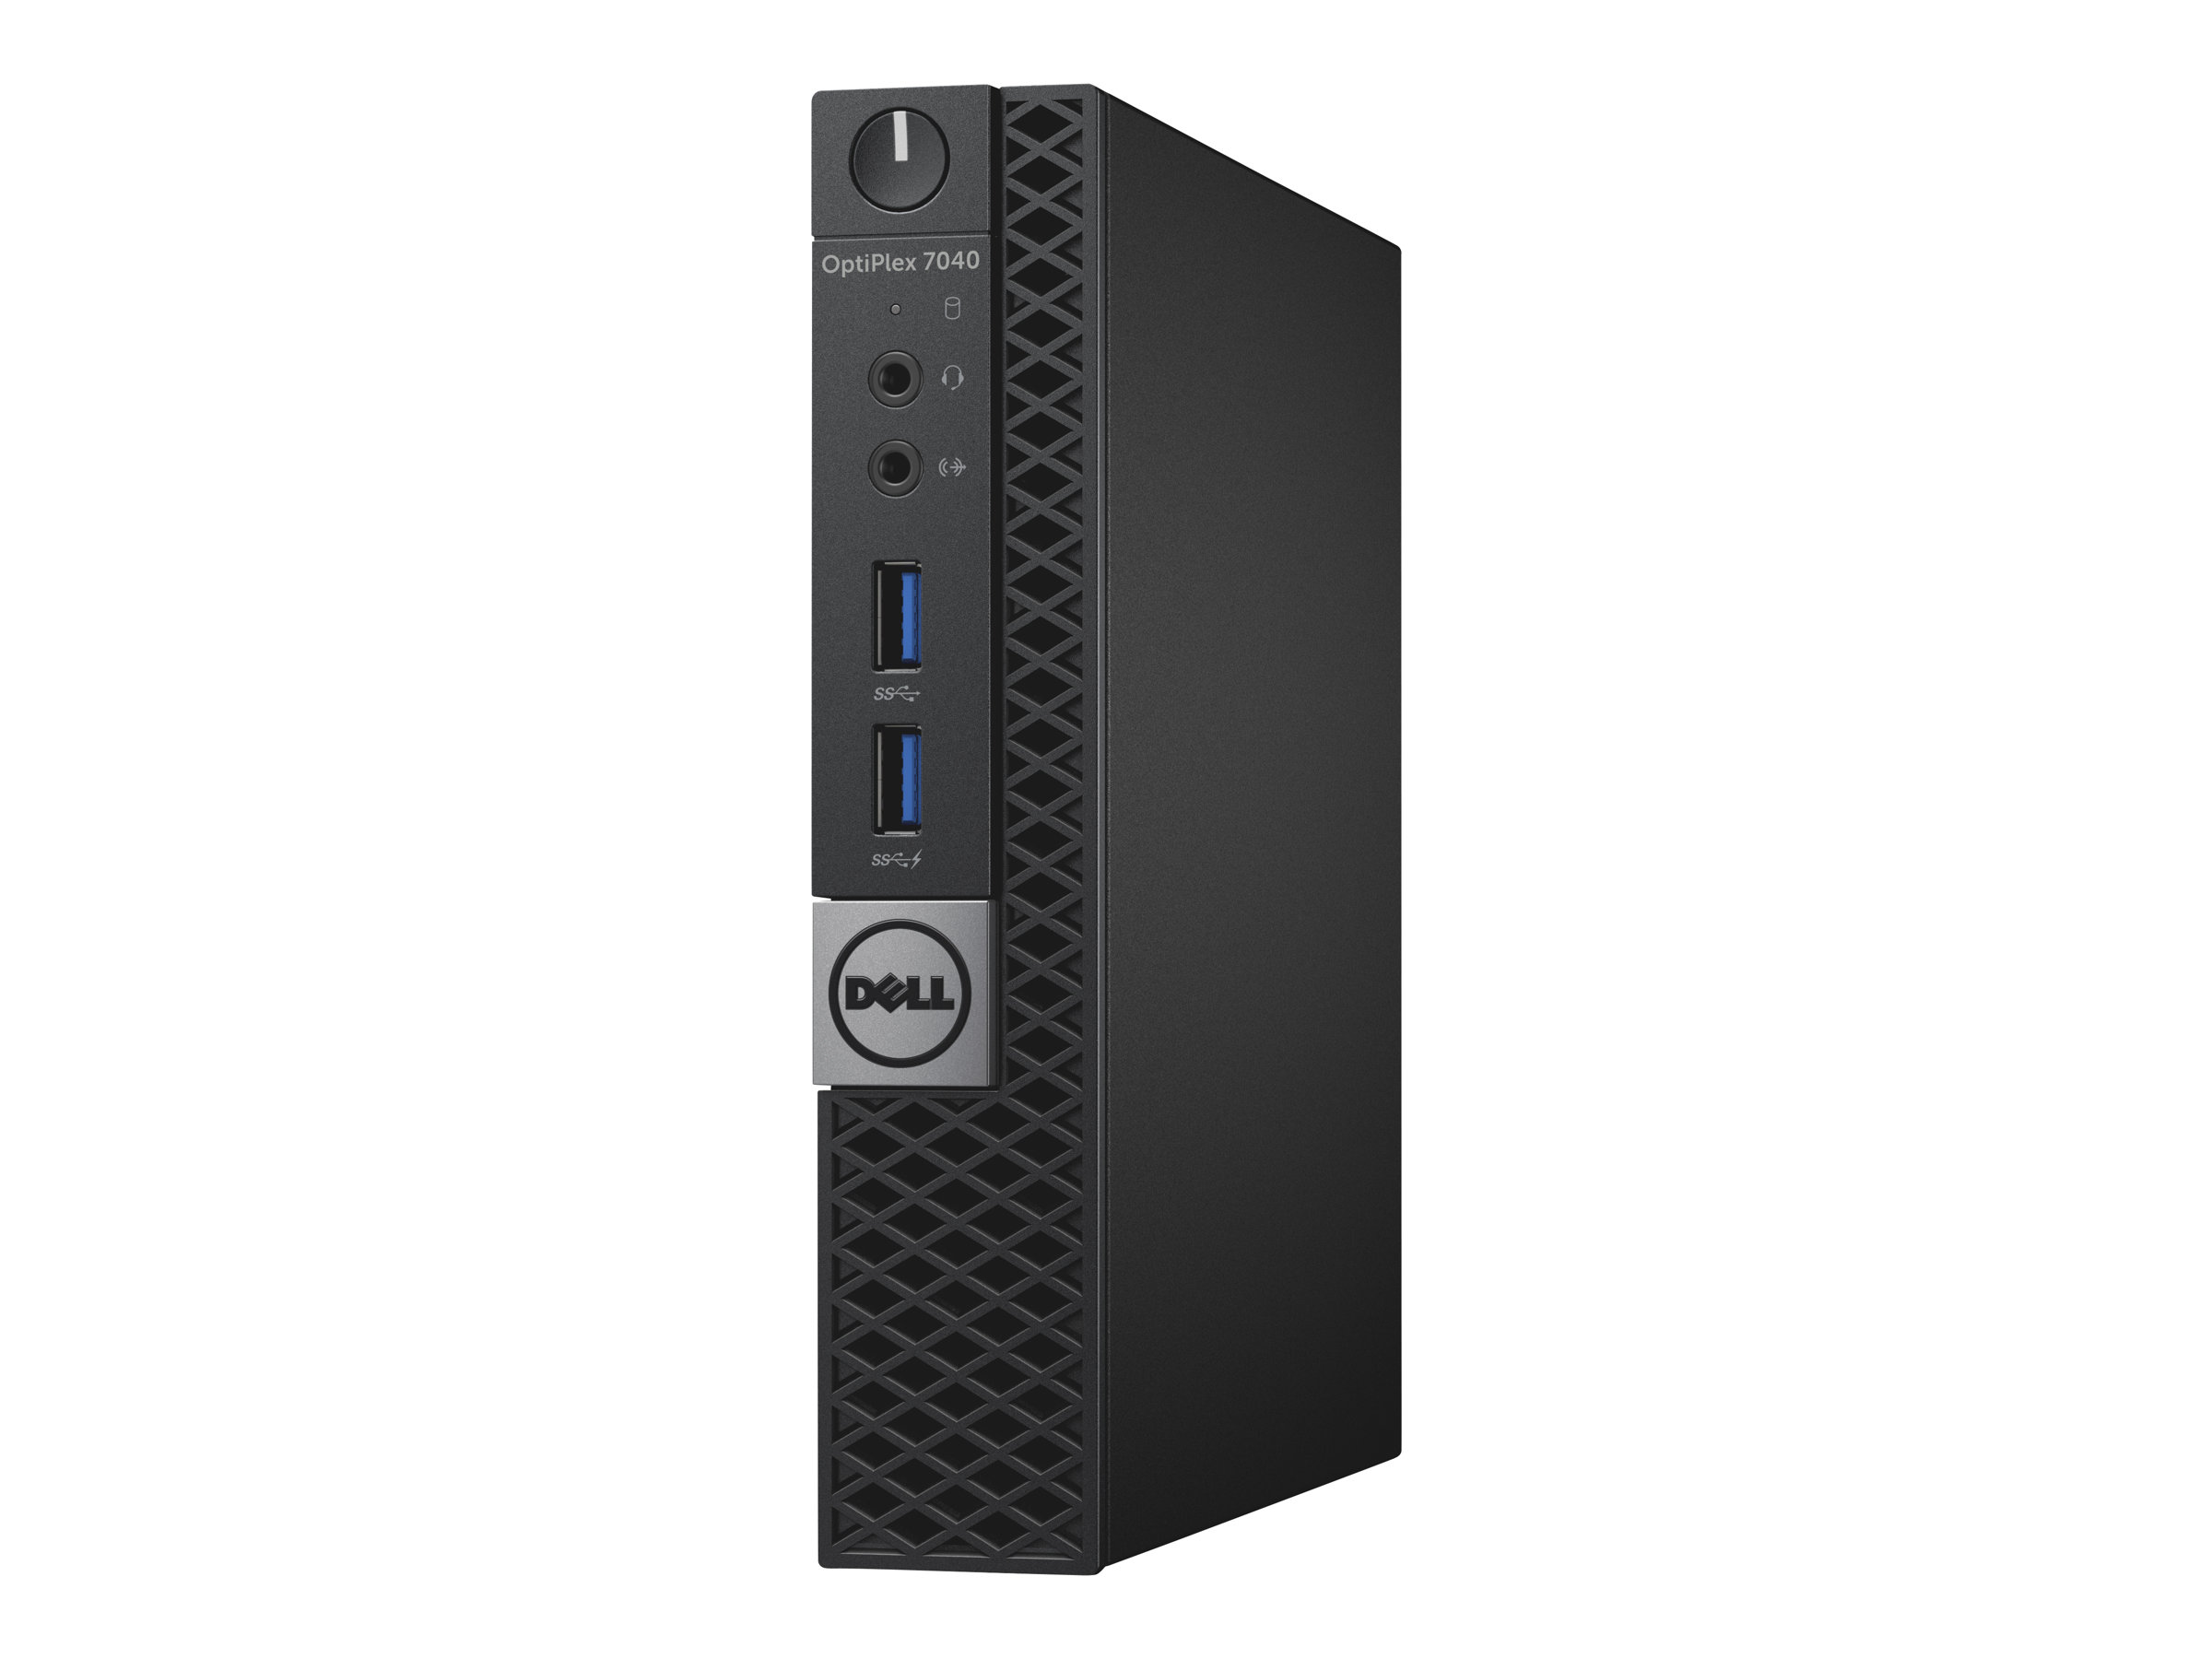 Dell OptiPlex 7040 - Micro - 1 x Core i5 6500T / 2.5 GHz - RAM 8 GB - HDD 500 GB - HD Graphics 530